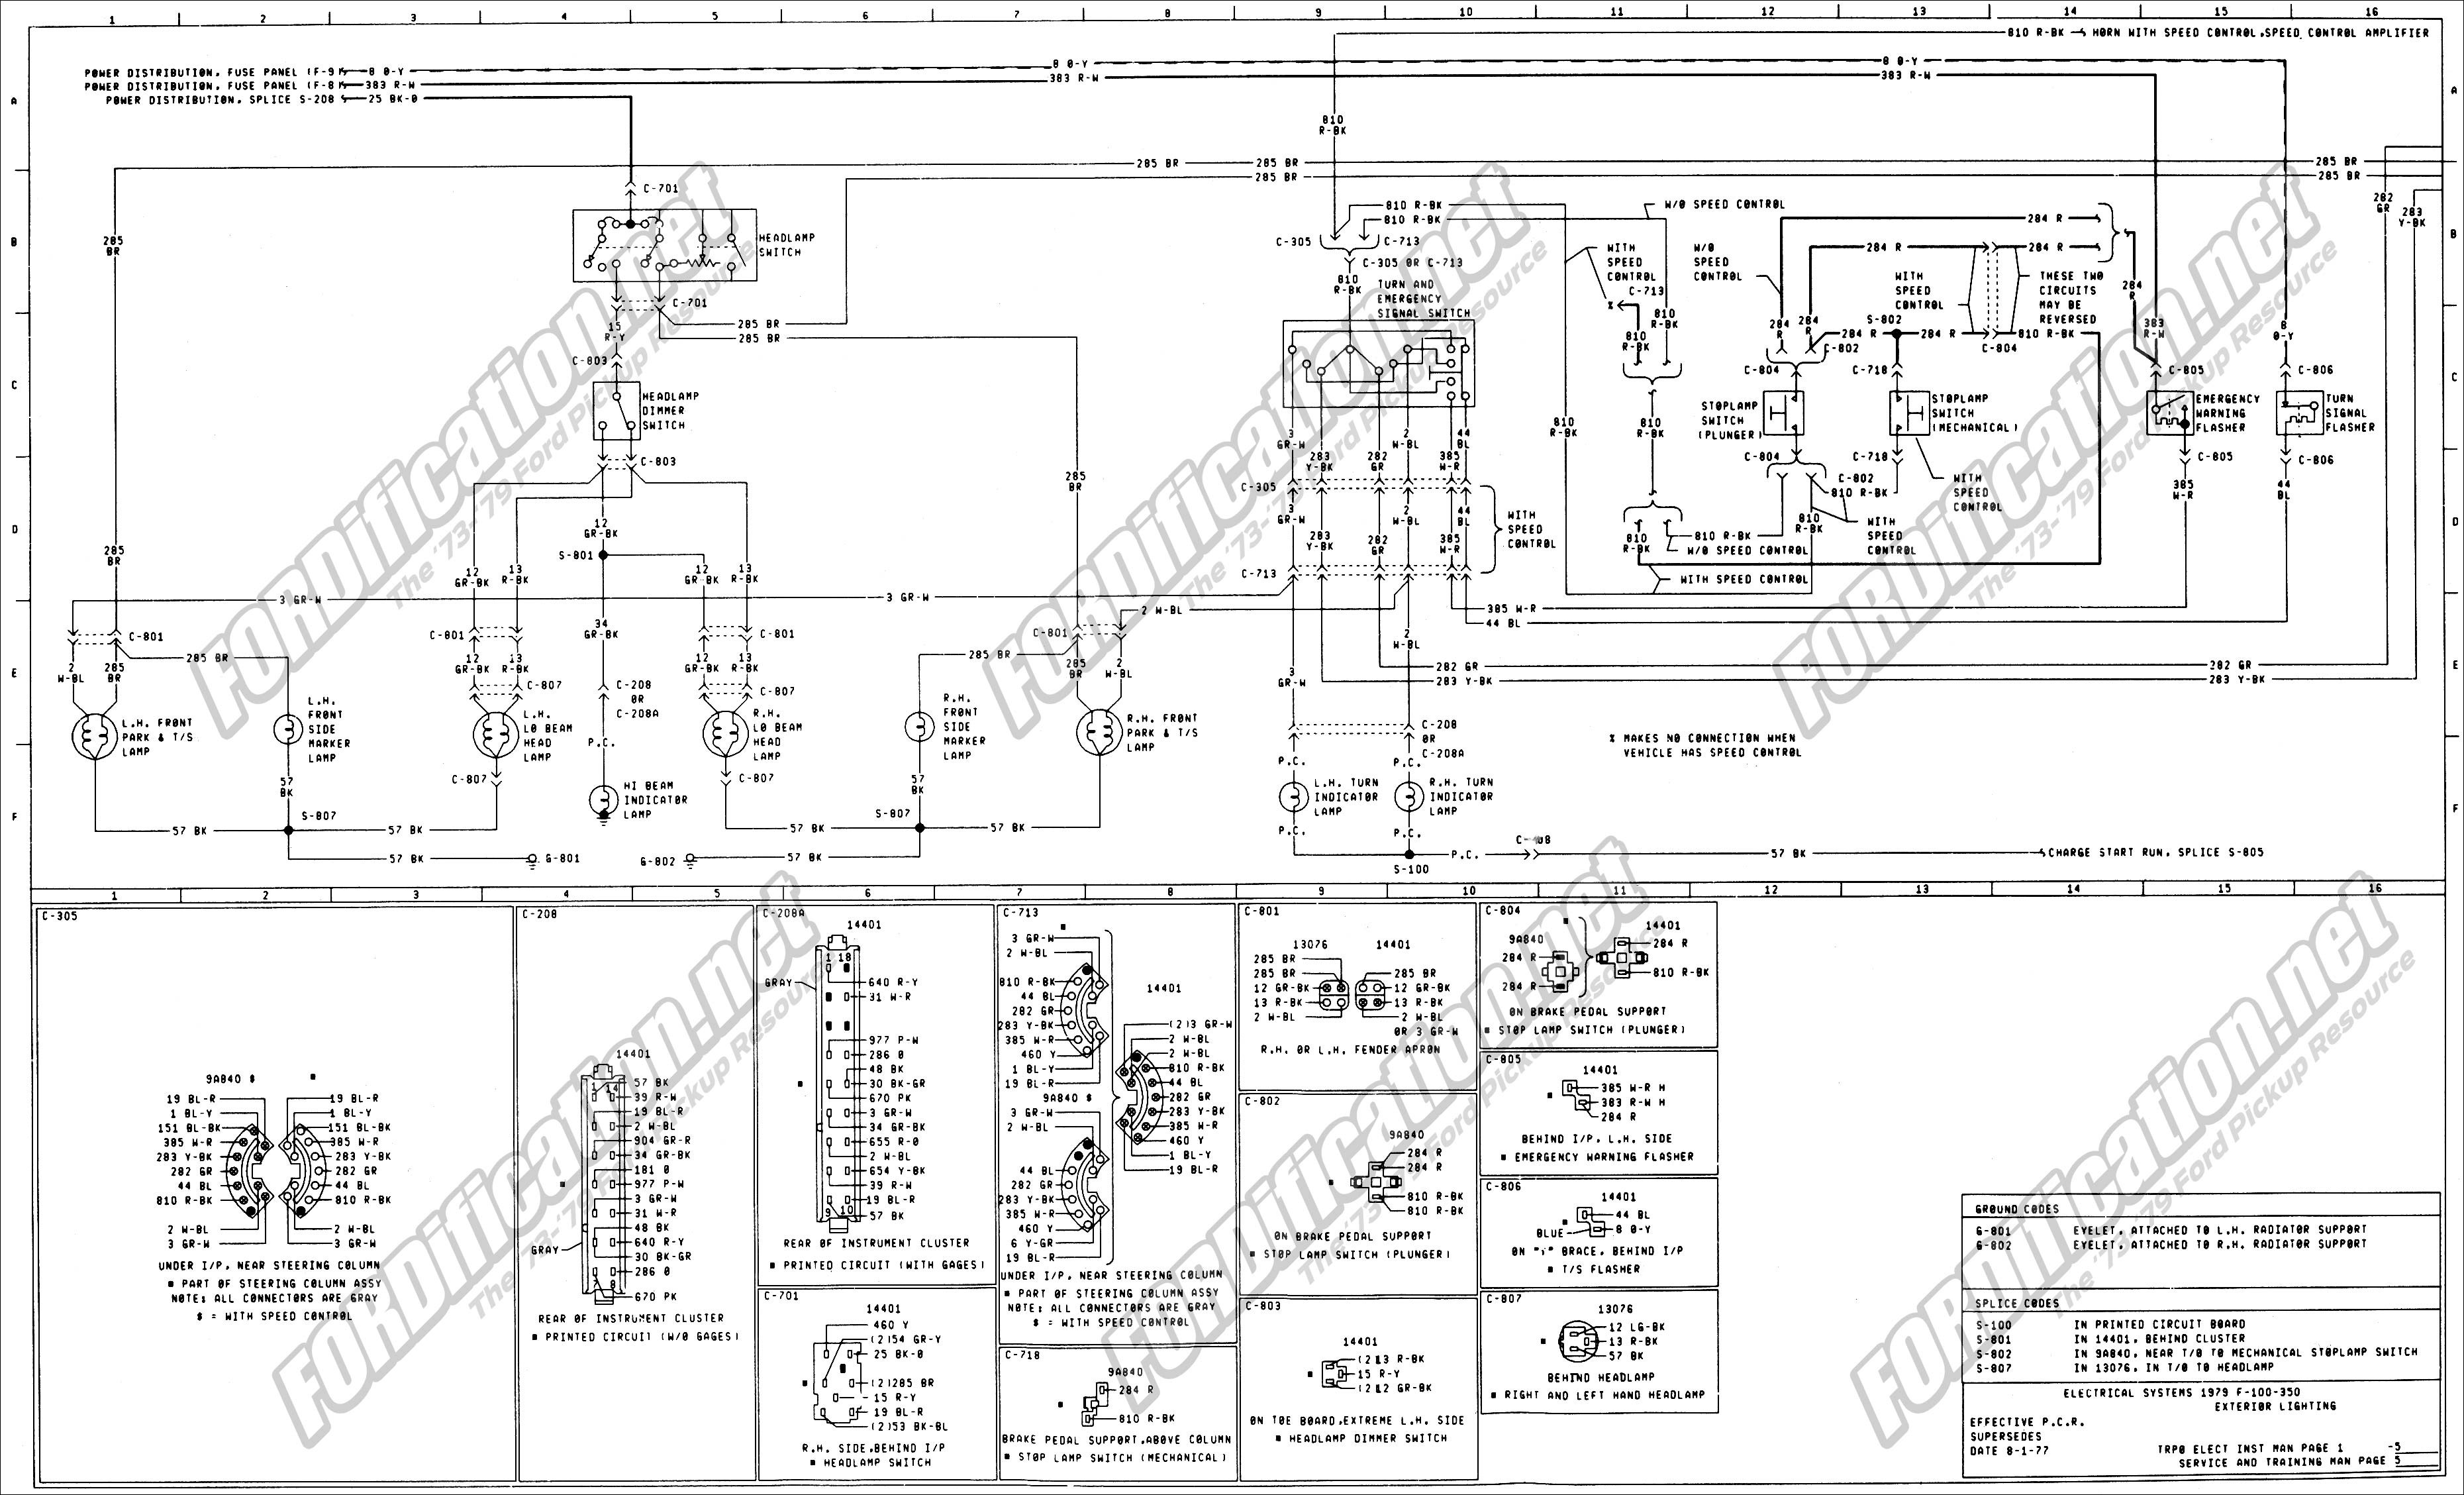 Wiring Diagram For Truck To Trailer Dodge Ram 2500 Plug Printable Hitch Of Related Post